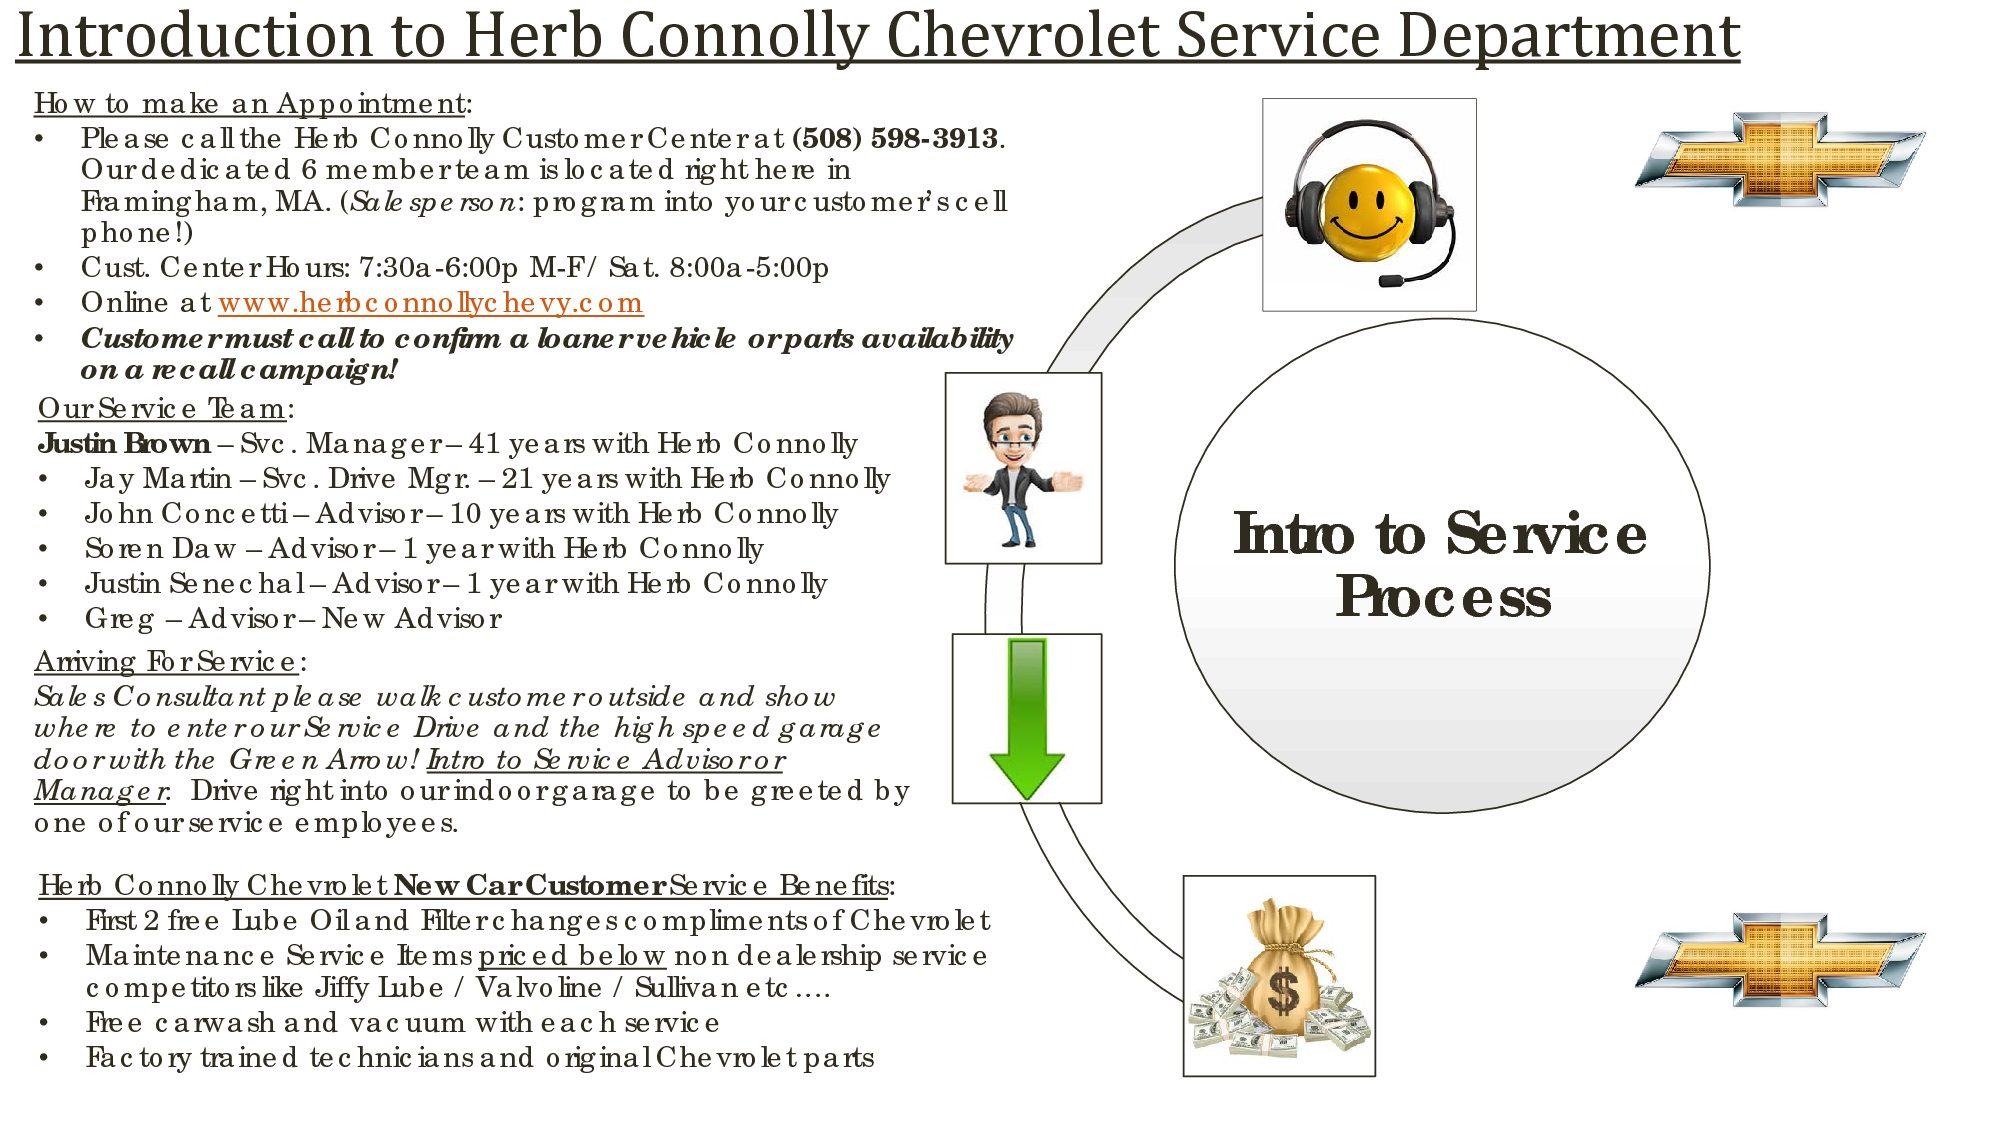 service auto repair department herb connolly chevrolet. Cars Review. Best American Auto & Cars Review